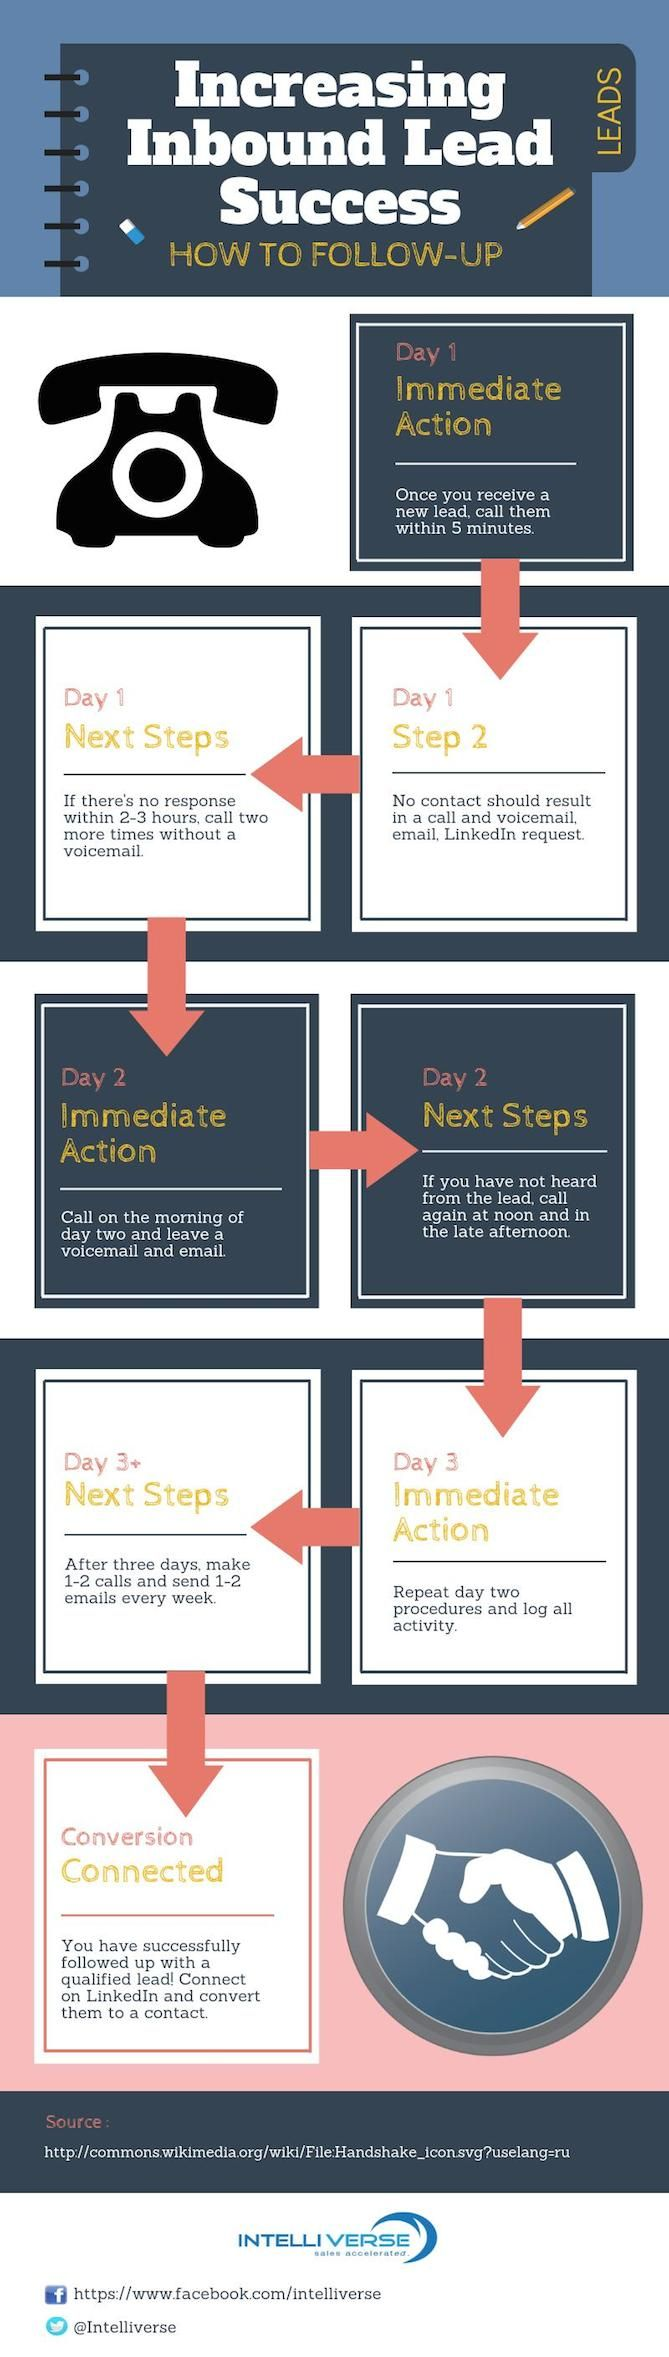 lead follow up schedule for realtors with internet leads ........................................................ Please save this pin... ........................................................... Because for real estate investing... Click on this link now! http://www.OwnItLand.com